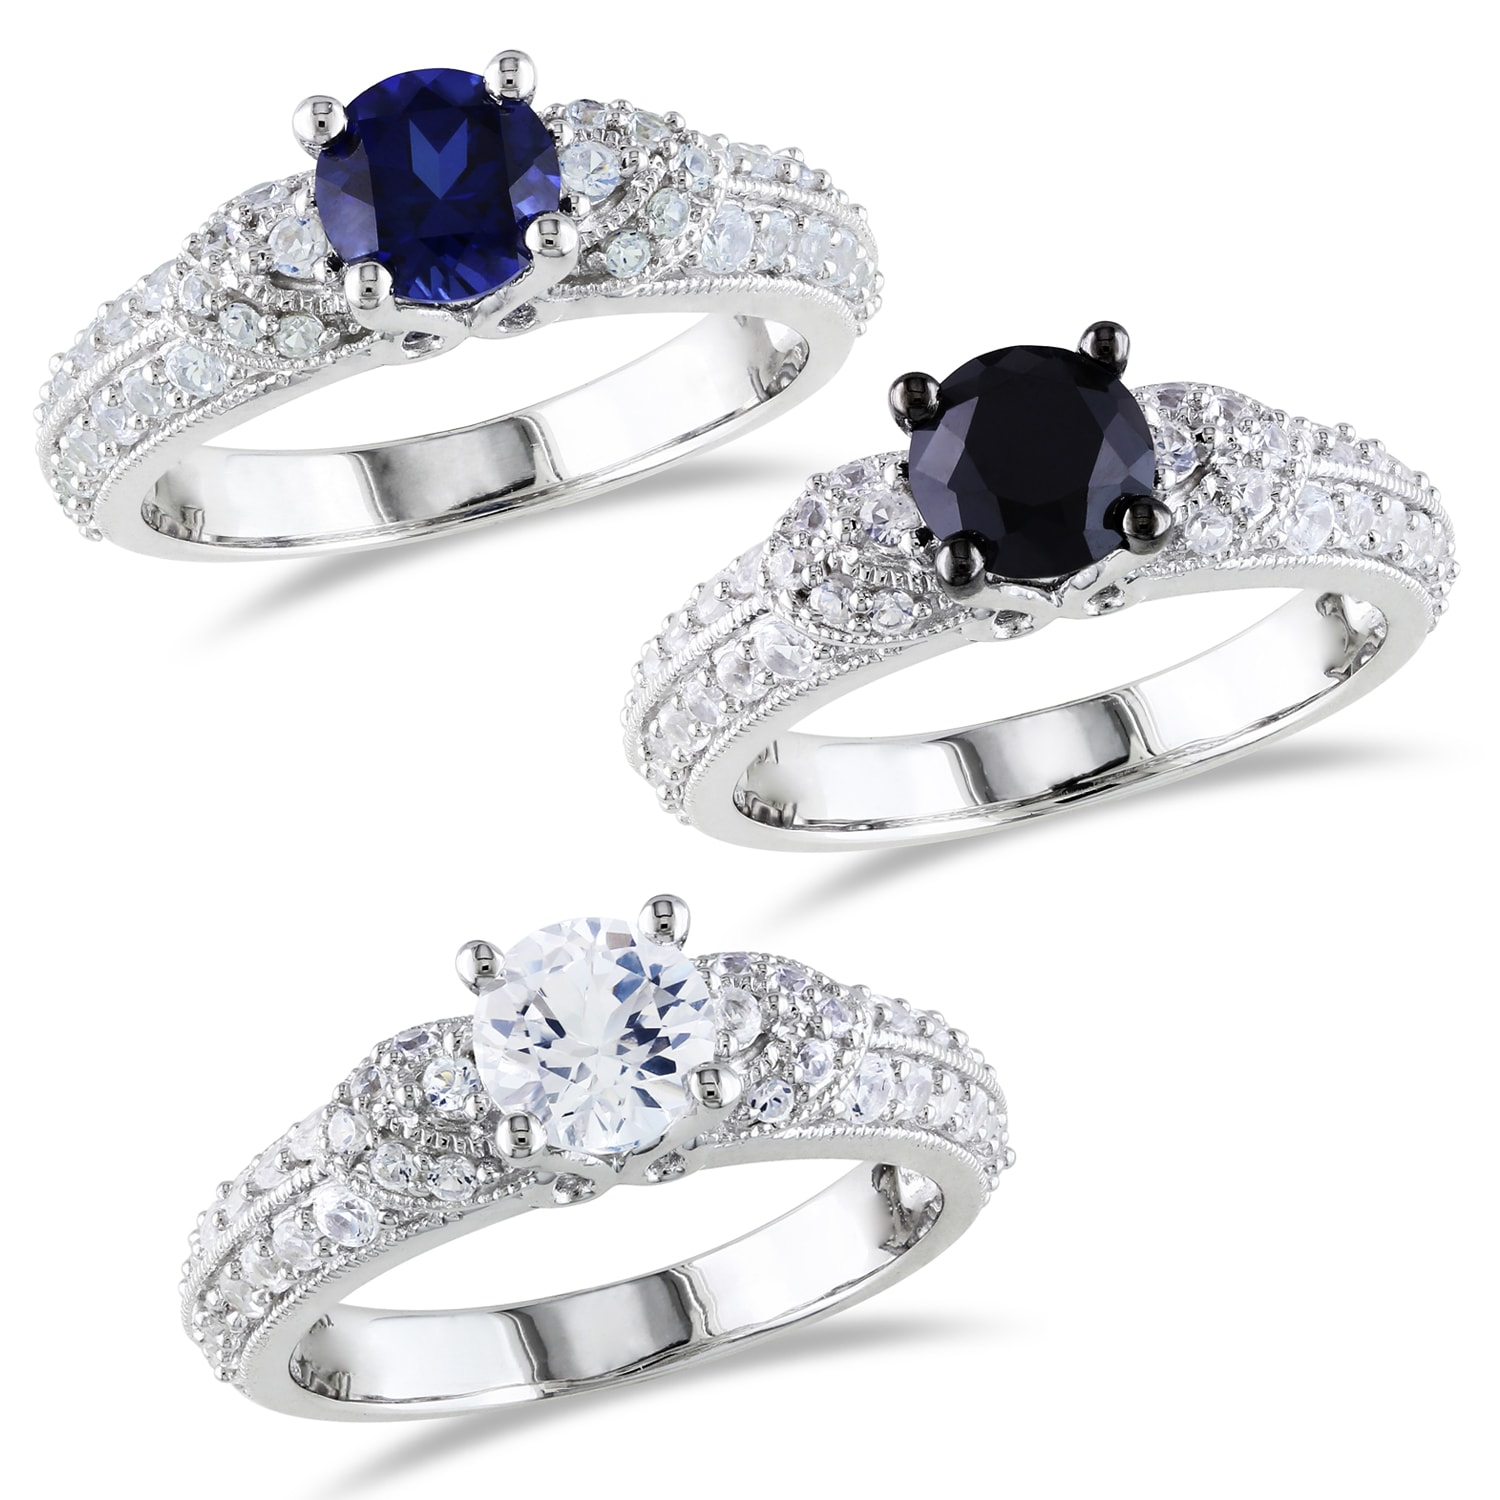 M by Miadora Sterling Silver Black Spinel or Sapphire Engagement Ring